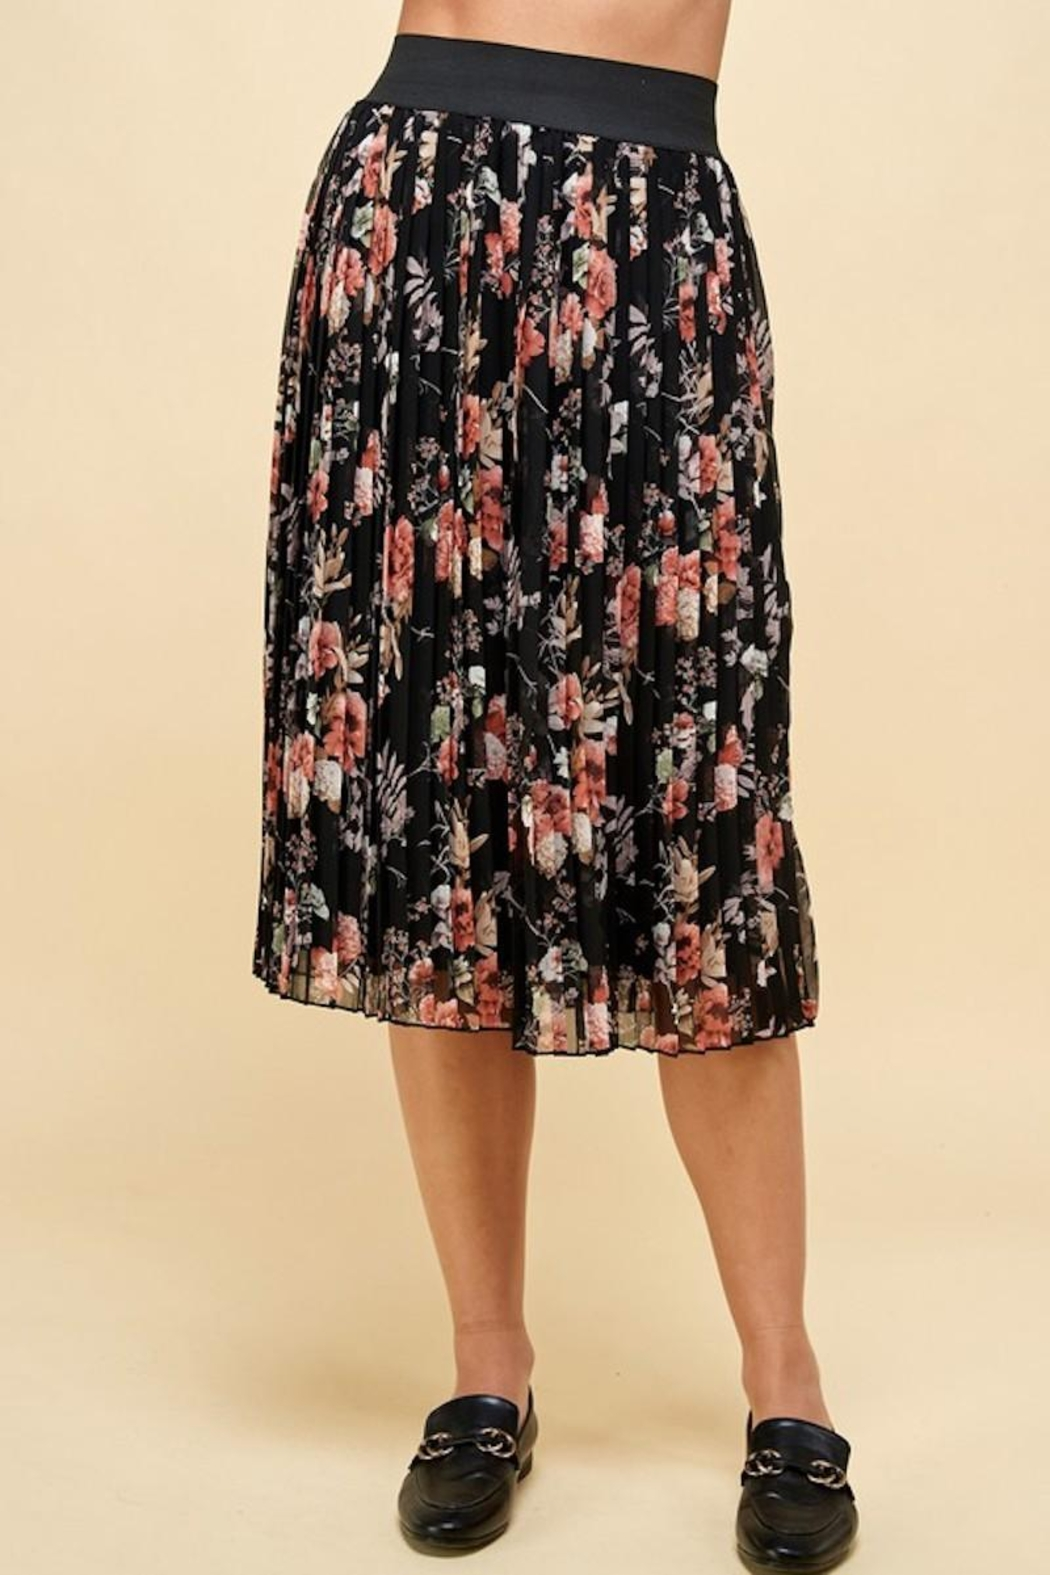 Les Amis Pleated Fall Floral Skirt - Side Cropped Image